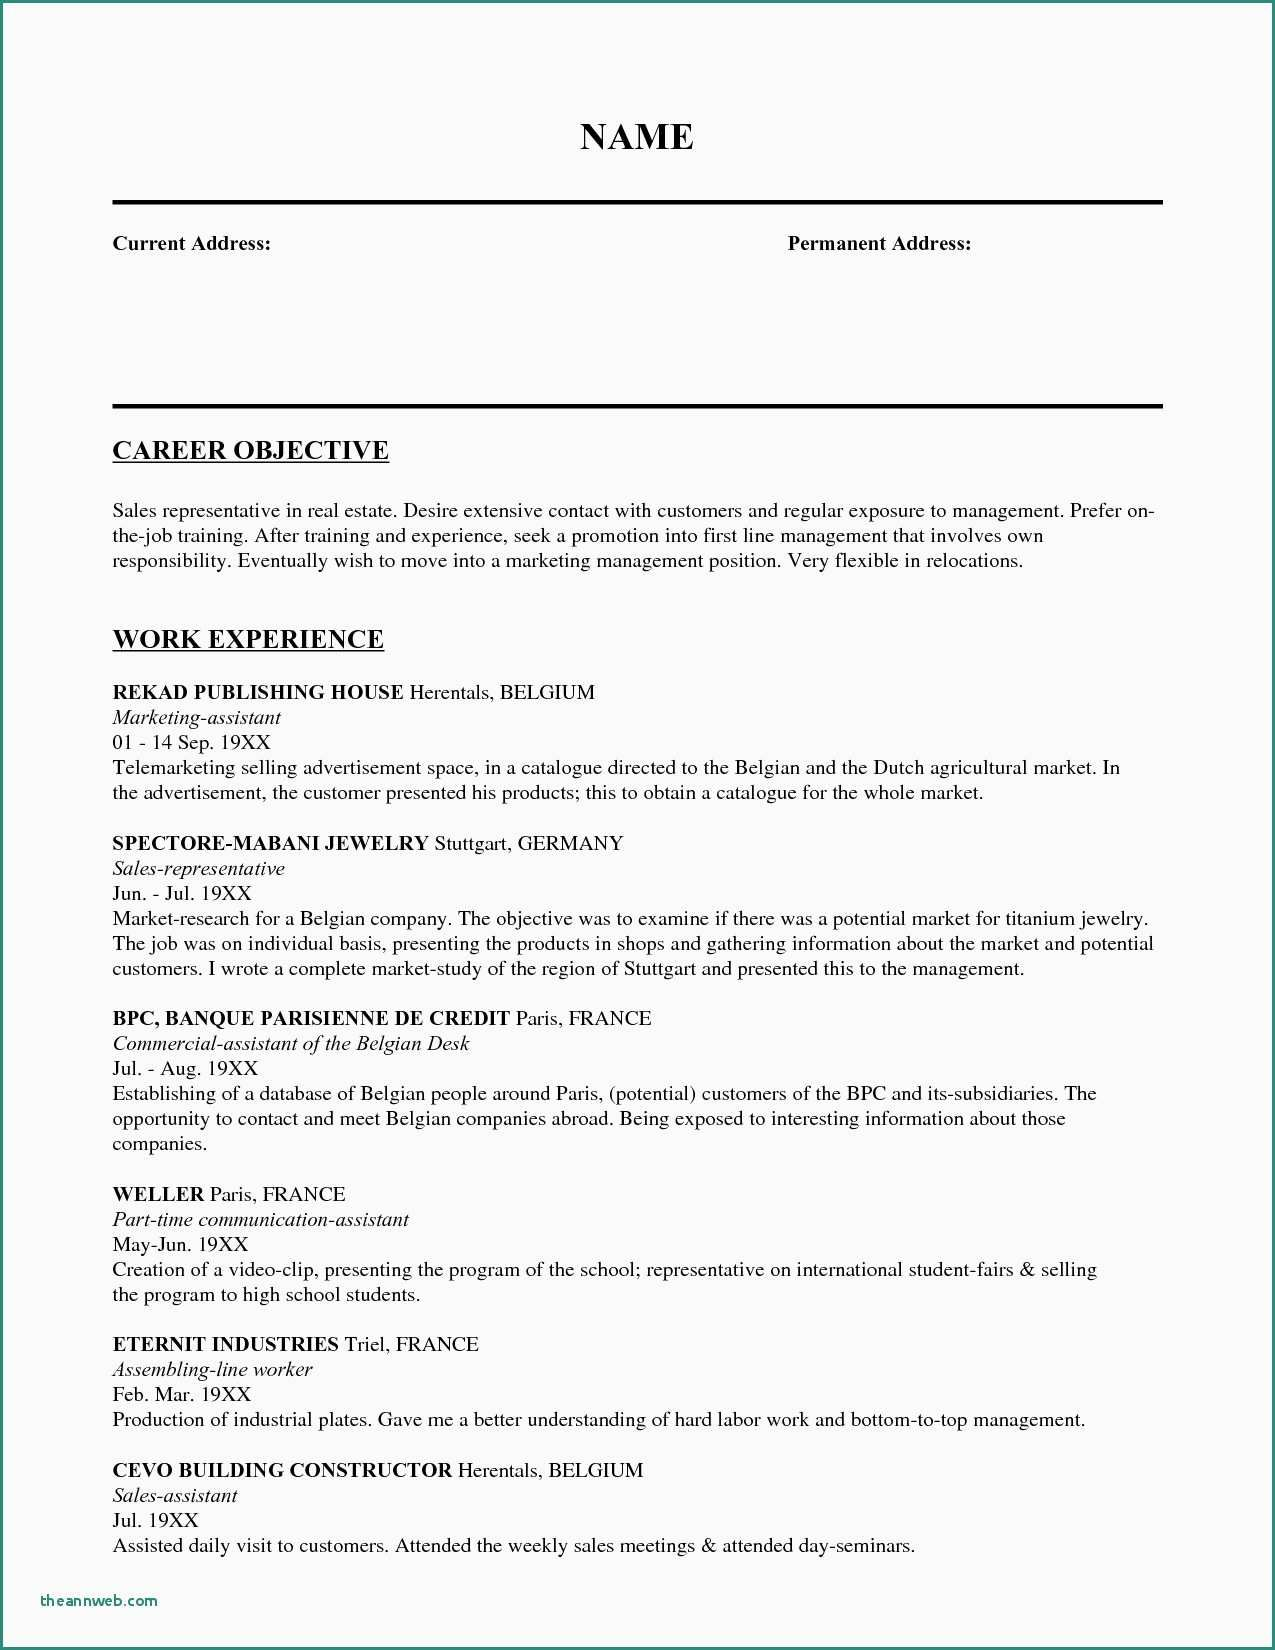 Customer Service Representative Resume Template Want It Download It Customer Service Resume Job Resume Samples Sample Resume